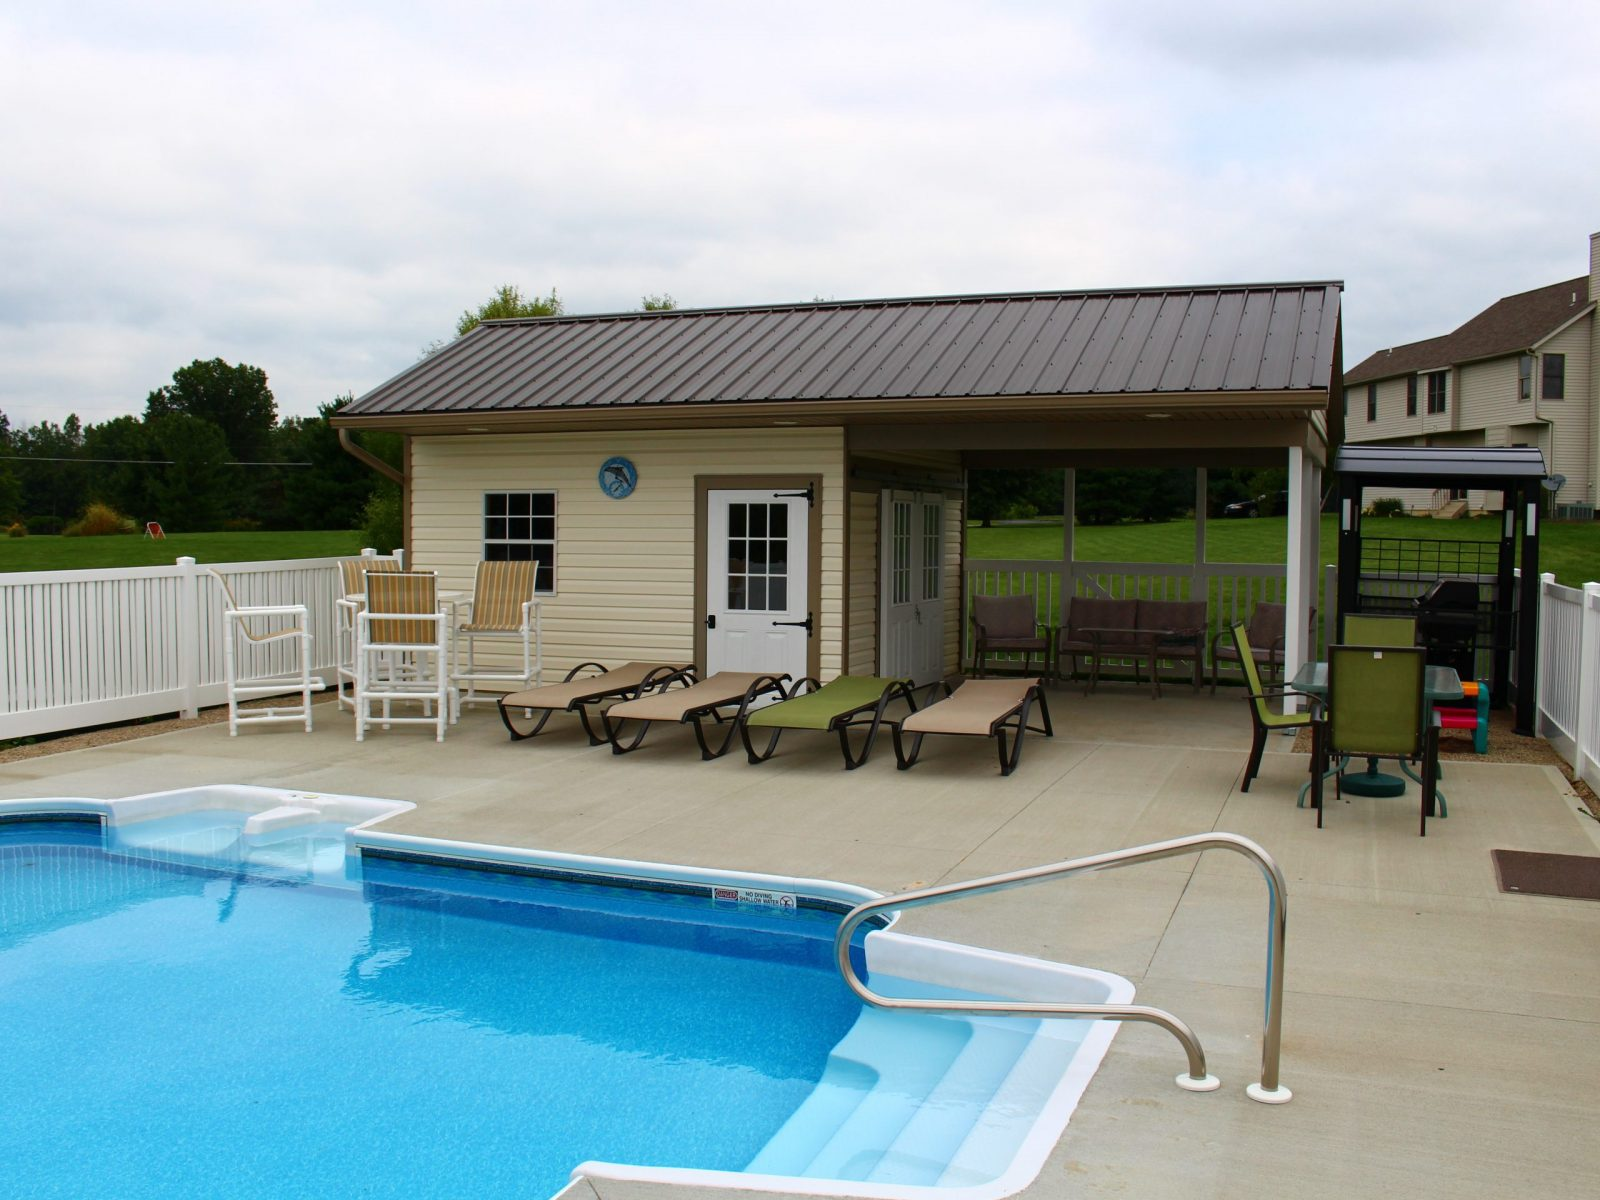 custom poolhouse shed with porch for sale central ohio